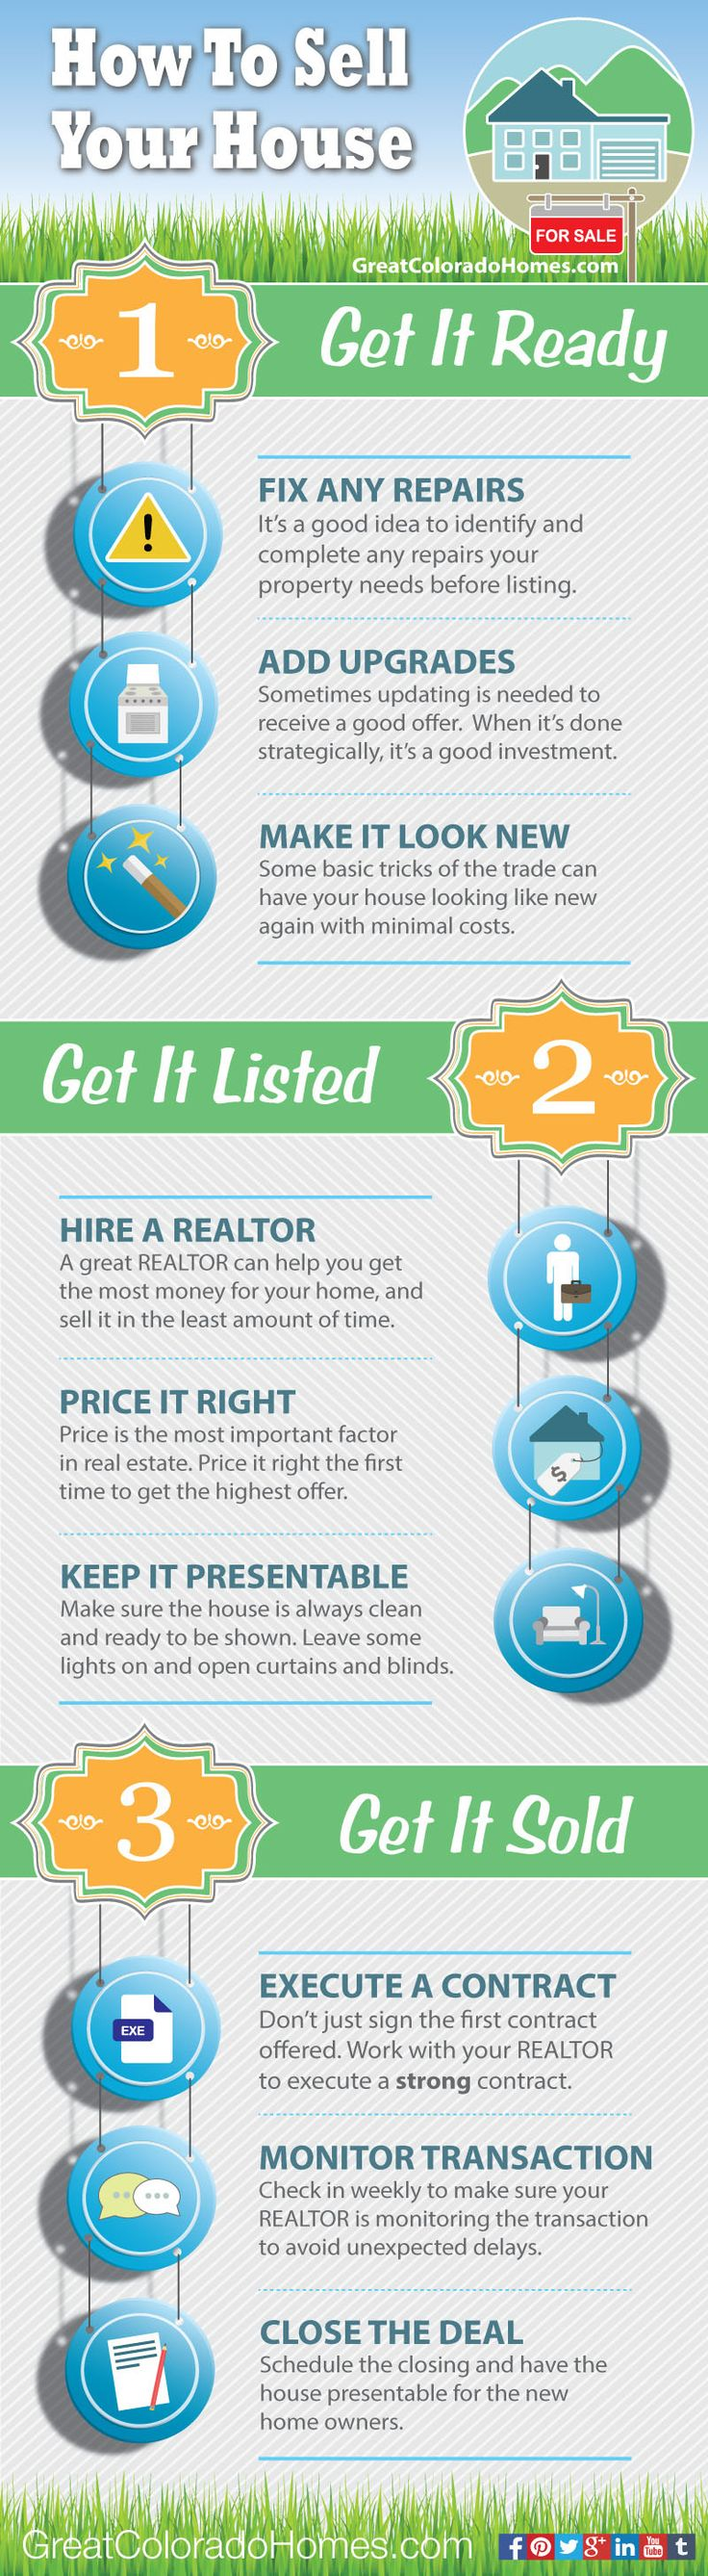 Infographic How To Sell Your House 1. Get It Ready FIX ANY REPAIRS It's a good idea to identify and complete any repairs your property needs before listing. ADD UPGRADES Sometimes updating is needed to receive a good offer. When it's done strategically, it's a good investment. MAKE IT LOOK NEW Some basic tricks of the trade can have your house looking like new again with minimal costs. 2. Get It Listed HIRE A REALTOR A great REALTOR can help you get the most money for your home, and sell it…